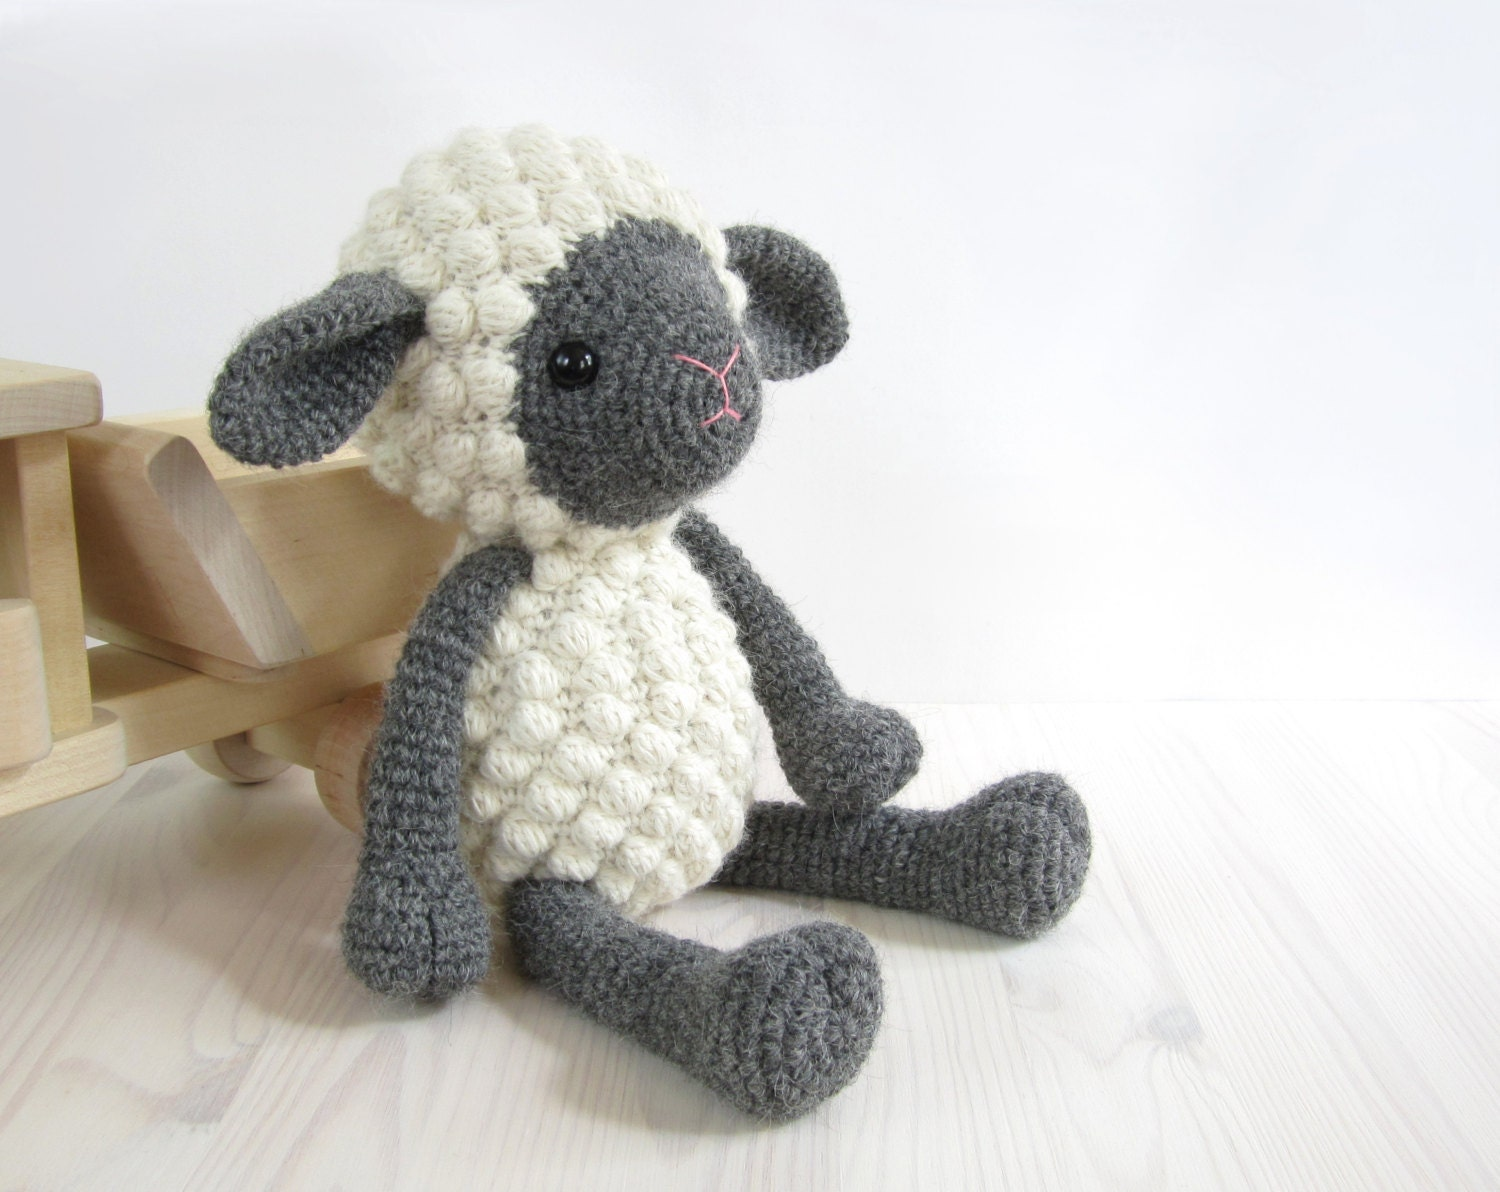 Alpaca Crochet Amigurumi : Amigurumi crochet sheep kalulu for